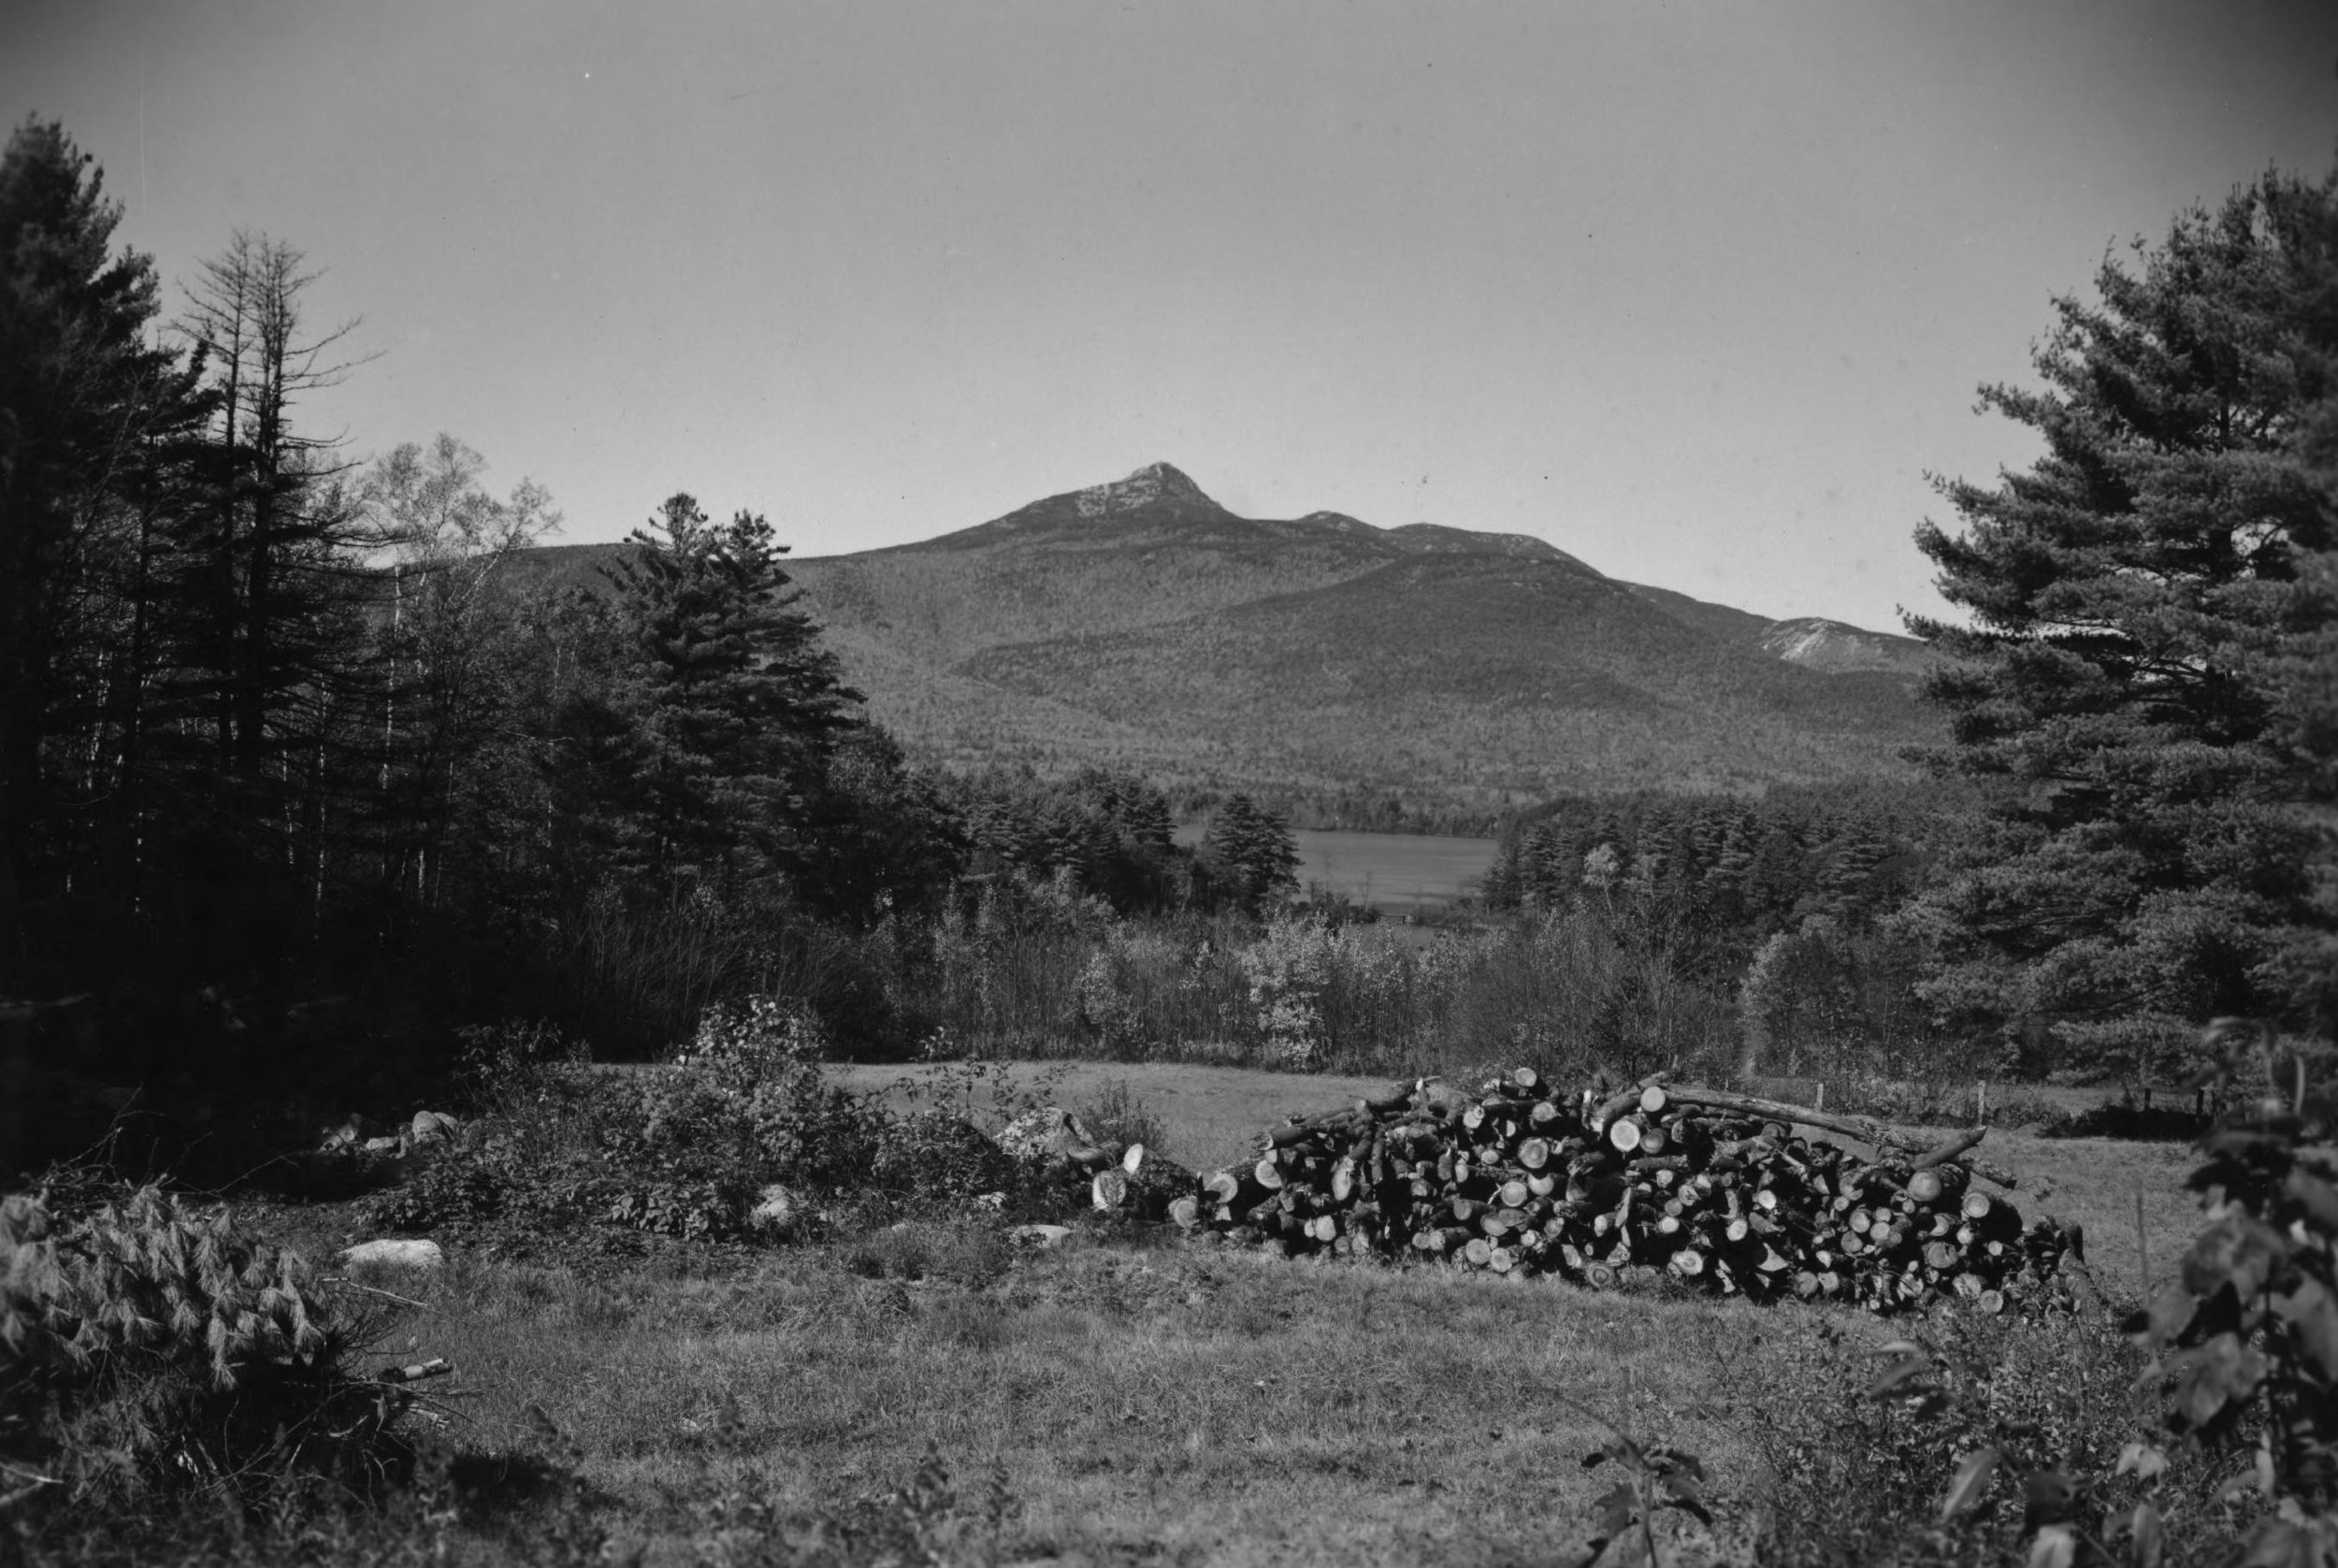 View from Basin View Lot, 1950